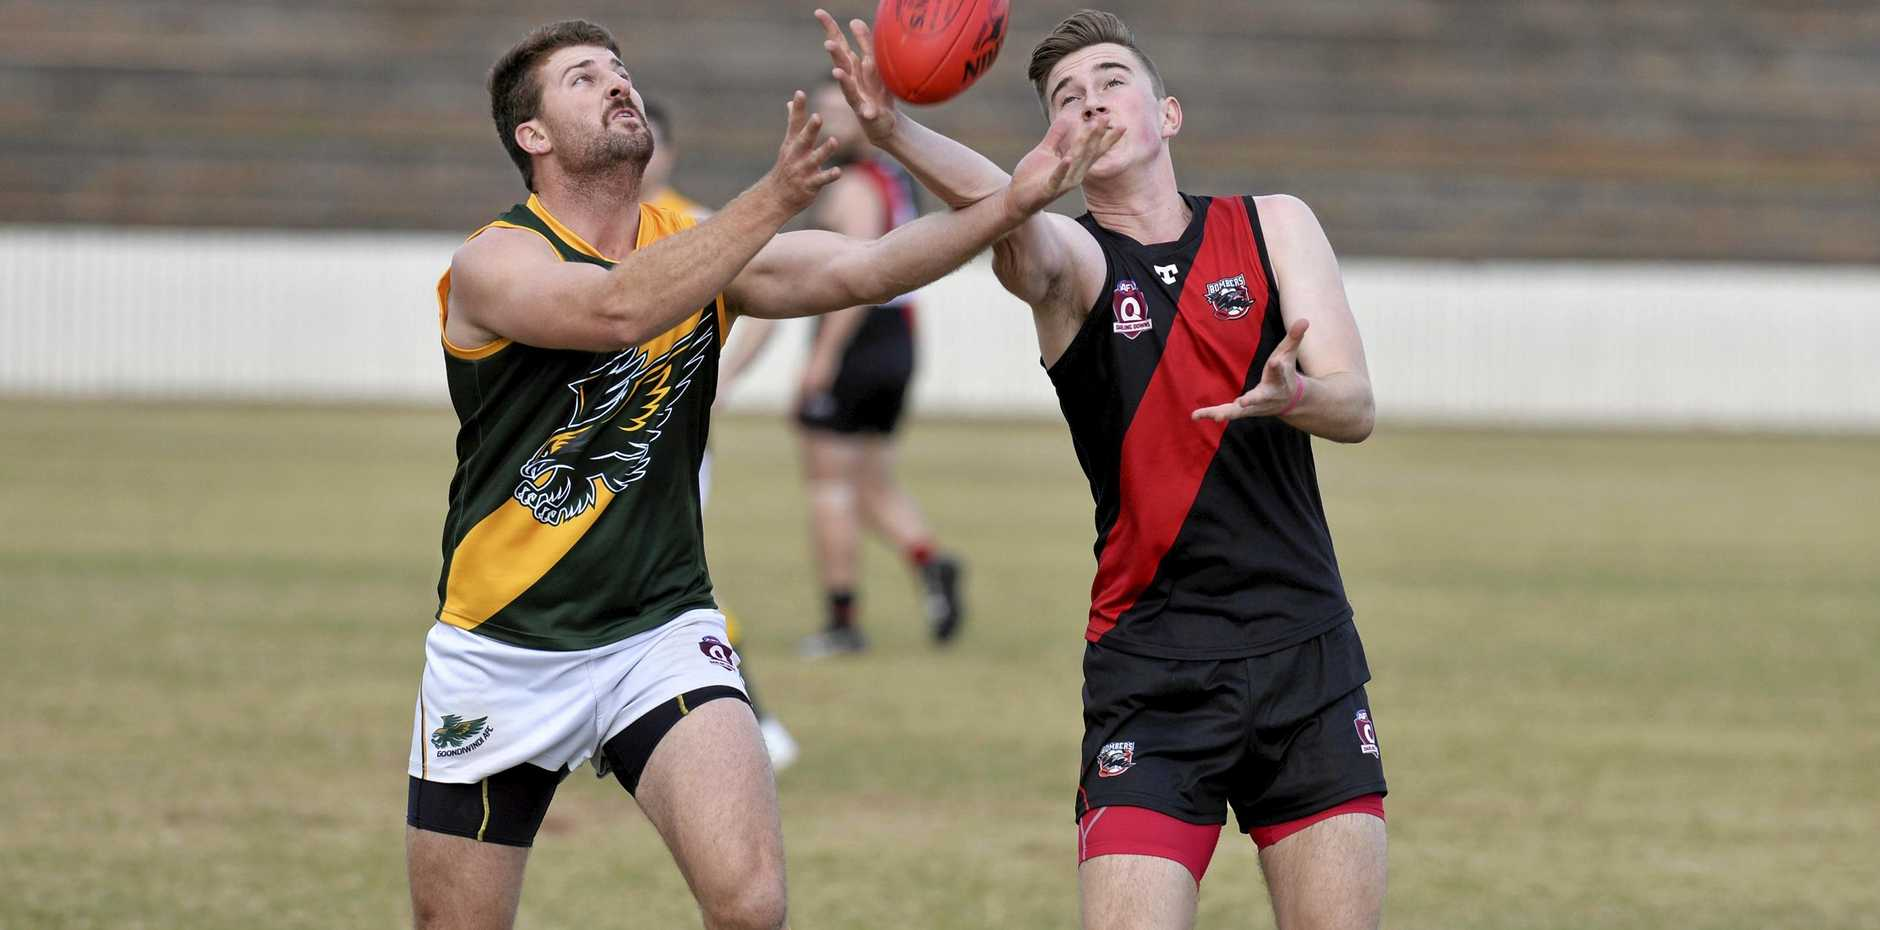 HOT CONTEST: Angus Croft (left) of the Goondiwindi Hawks and Tyler Gilmore of the South Toowoomba Bombers fight for possession during an earlier fixture this season.